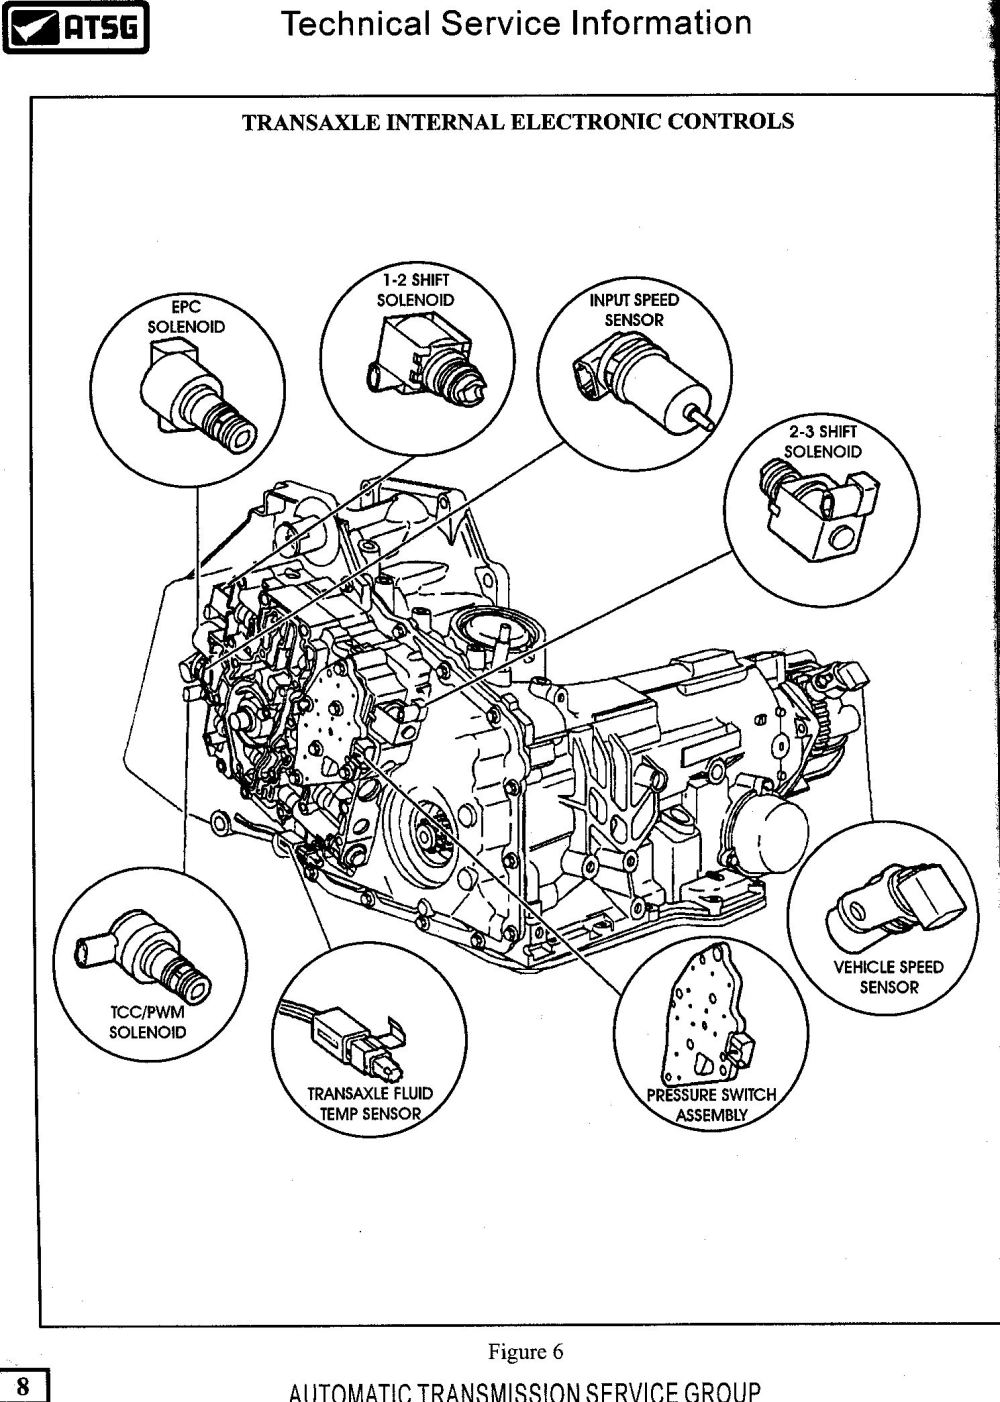 medium resolution of gm 4t65e diagram wiring diagram schematics 1999 jimmy gm transaxle diagram 4t65e hd diagram simple wiring